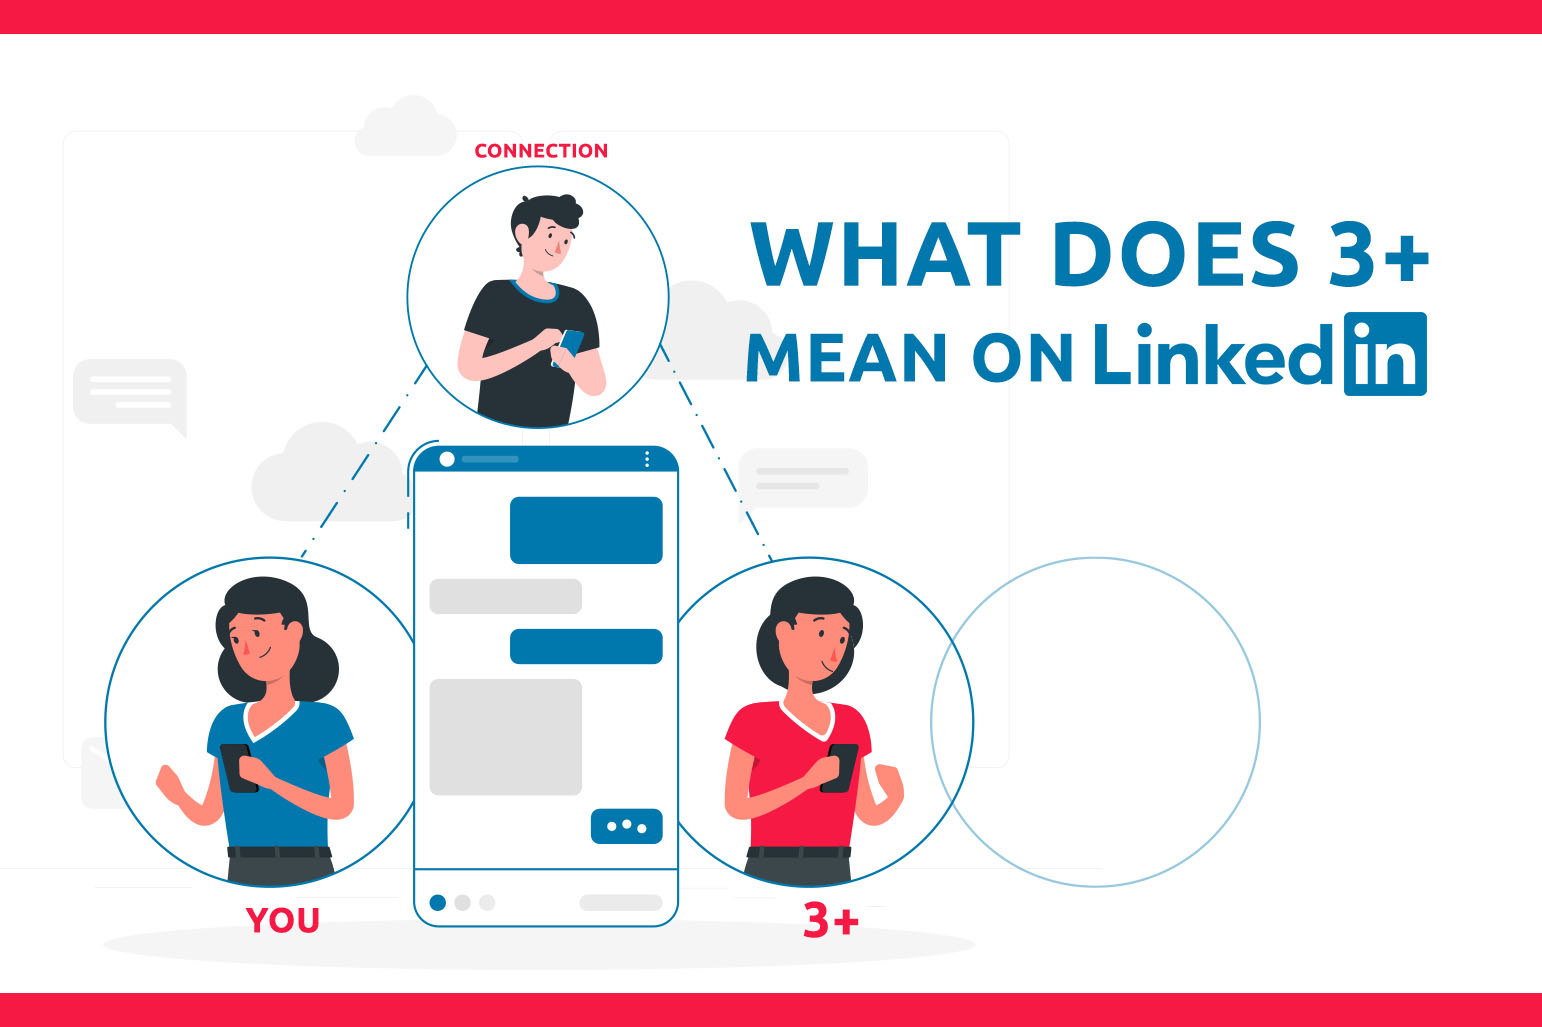 What Does 3+ Mean On LinkedIn?